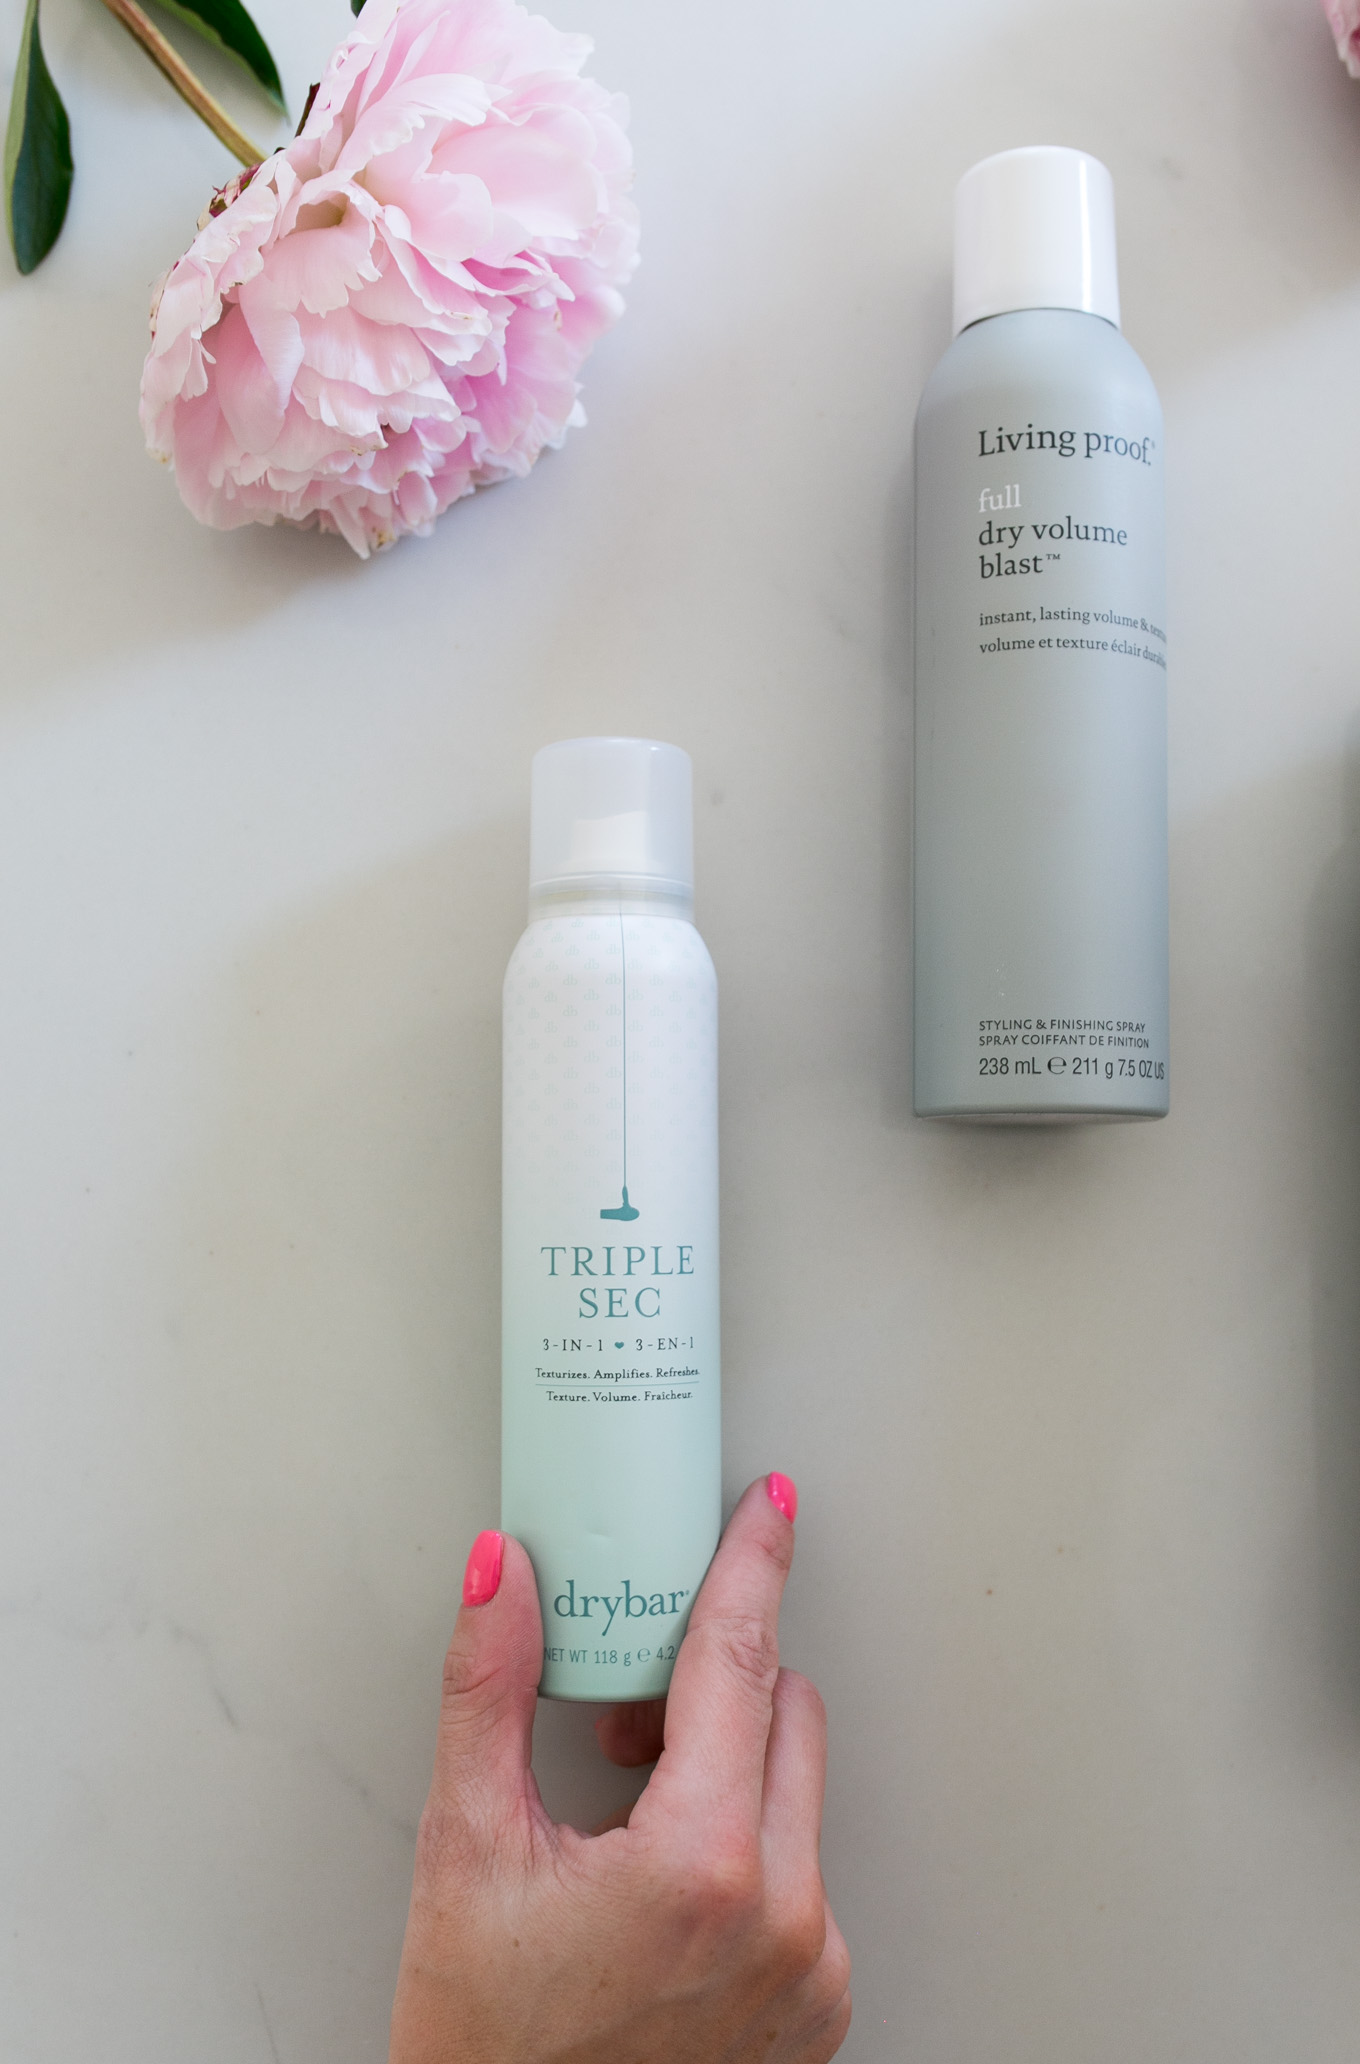 Blogger Daryl-Ann Denner of Something Beautiful share her favorite hair care products for full hair including Dry Bar Triple Sec, Living Proof Full Dry Volume Blast, and Oribe Dry Texturizing Spray